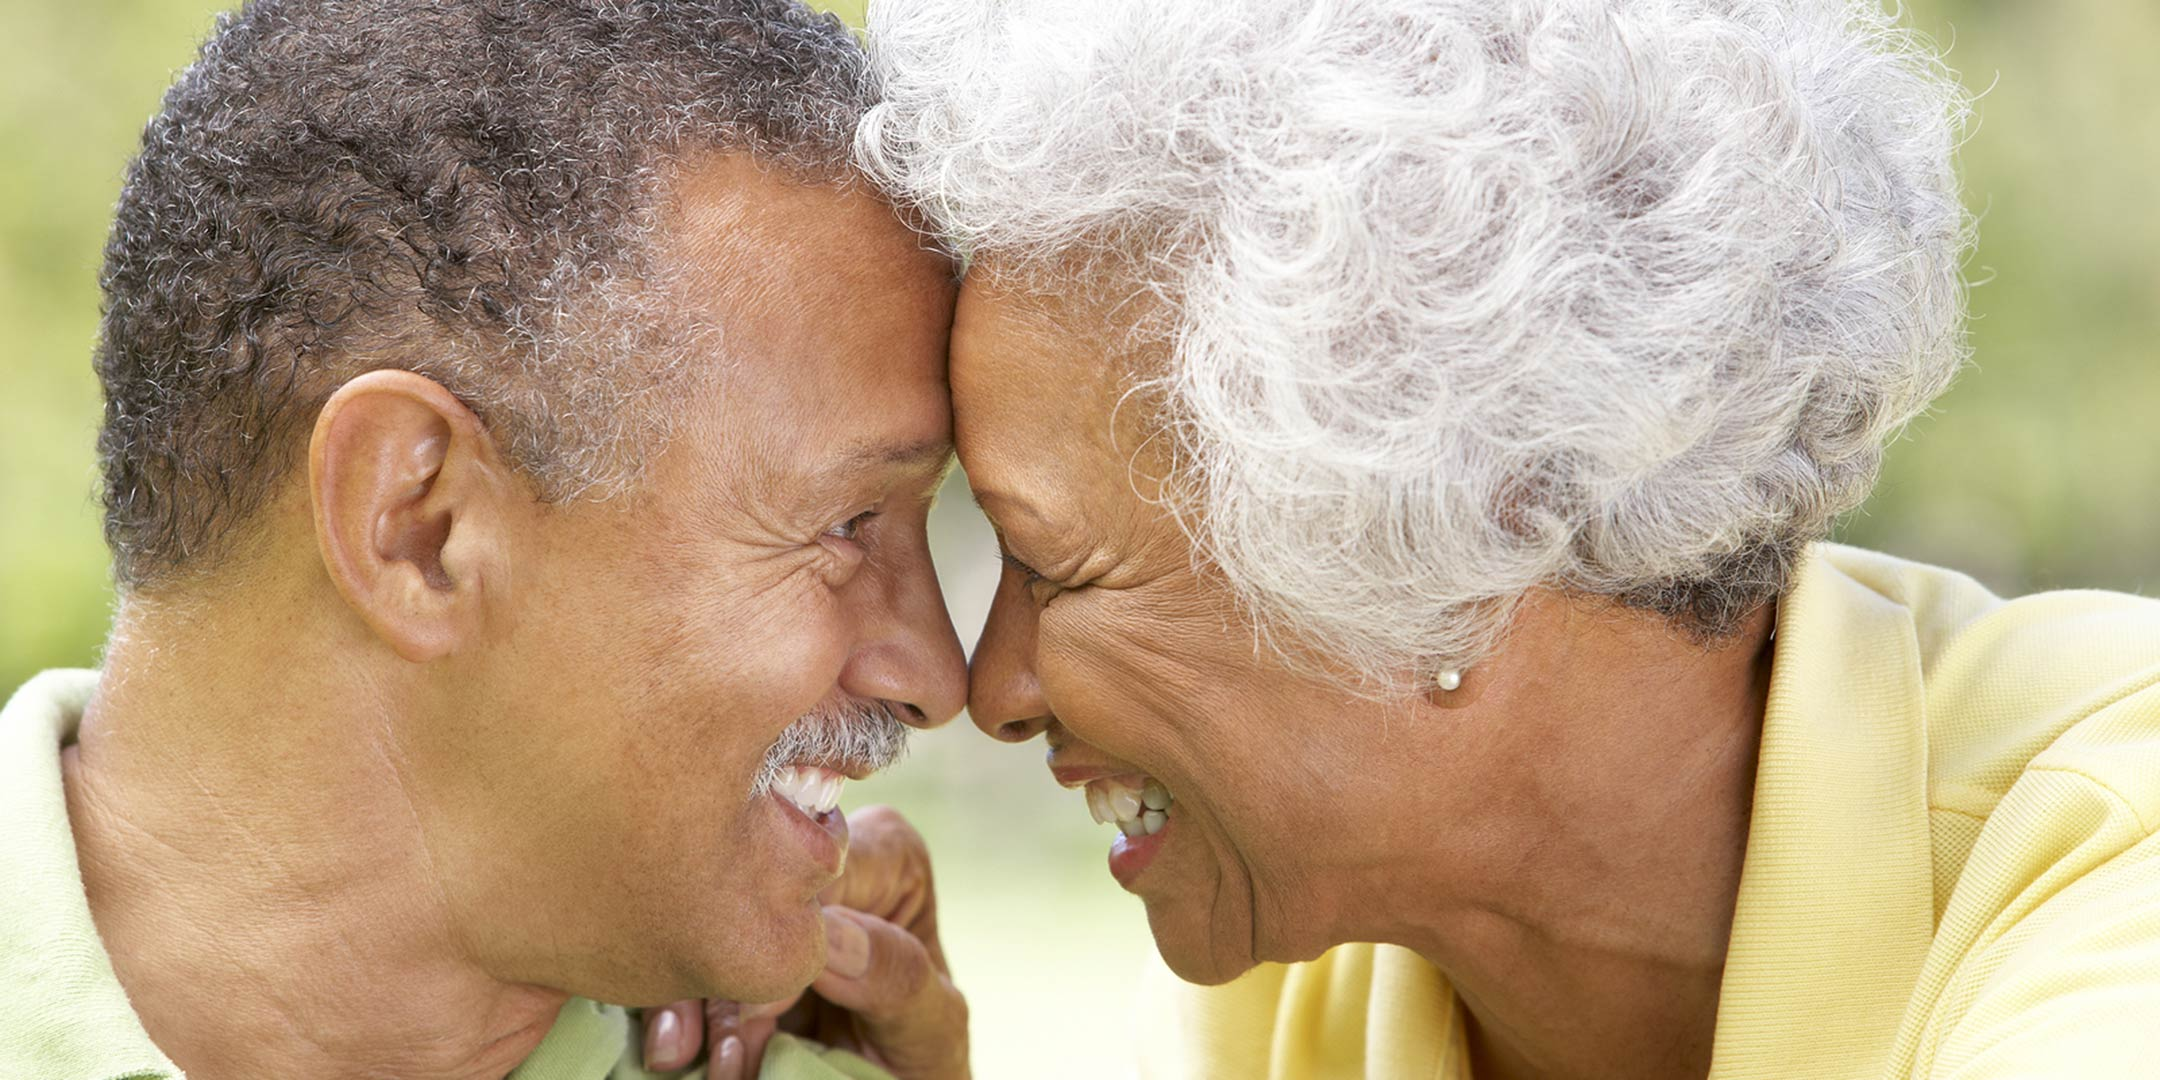 Mature folks making love Seniors And Good Sex Tips For Staying Active In The Bedroom